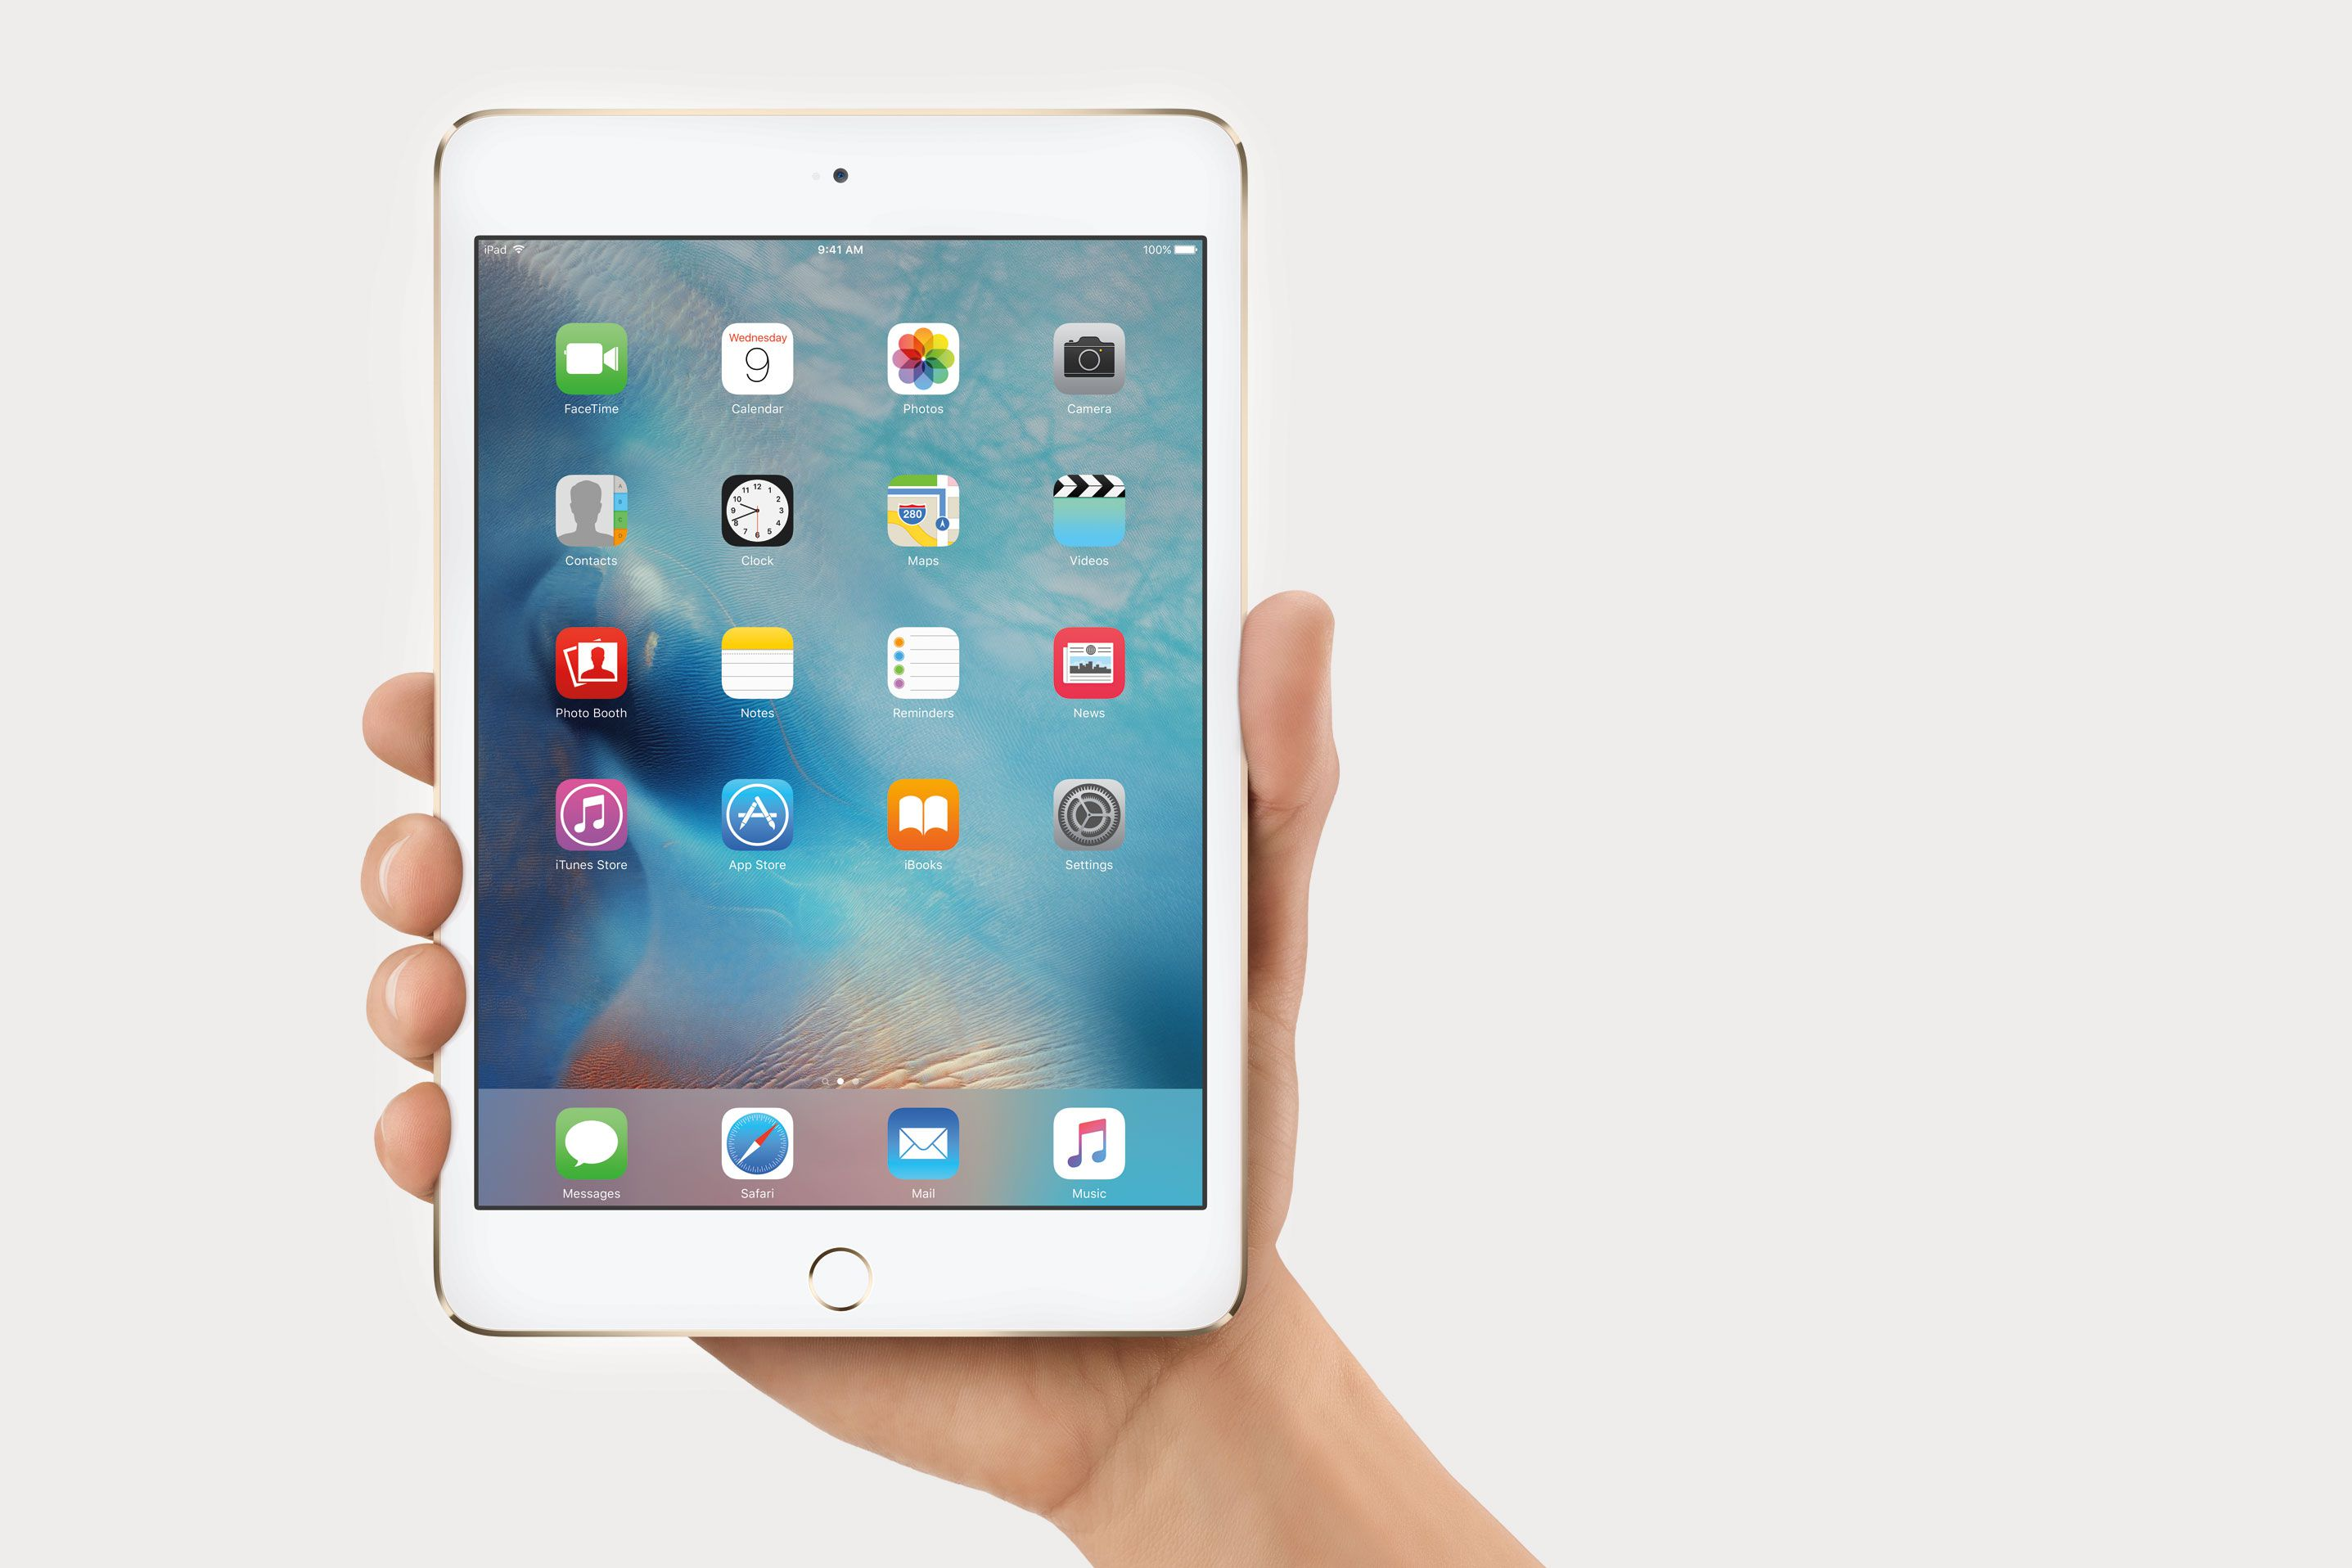 Should You Buy an iPad Mini 4?